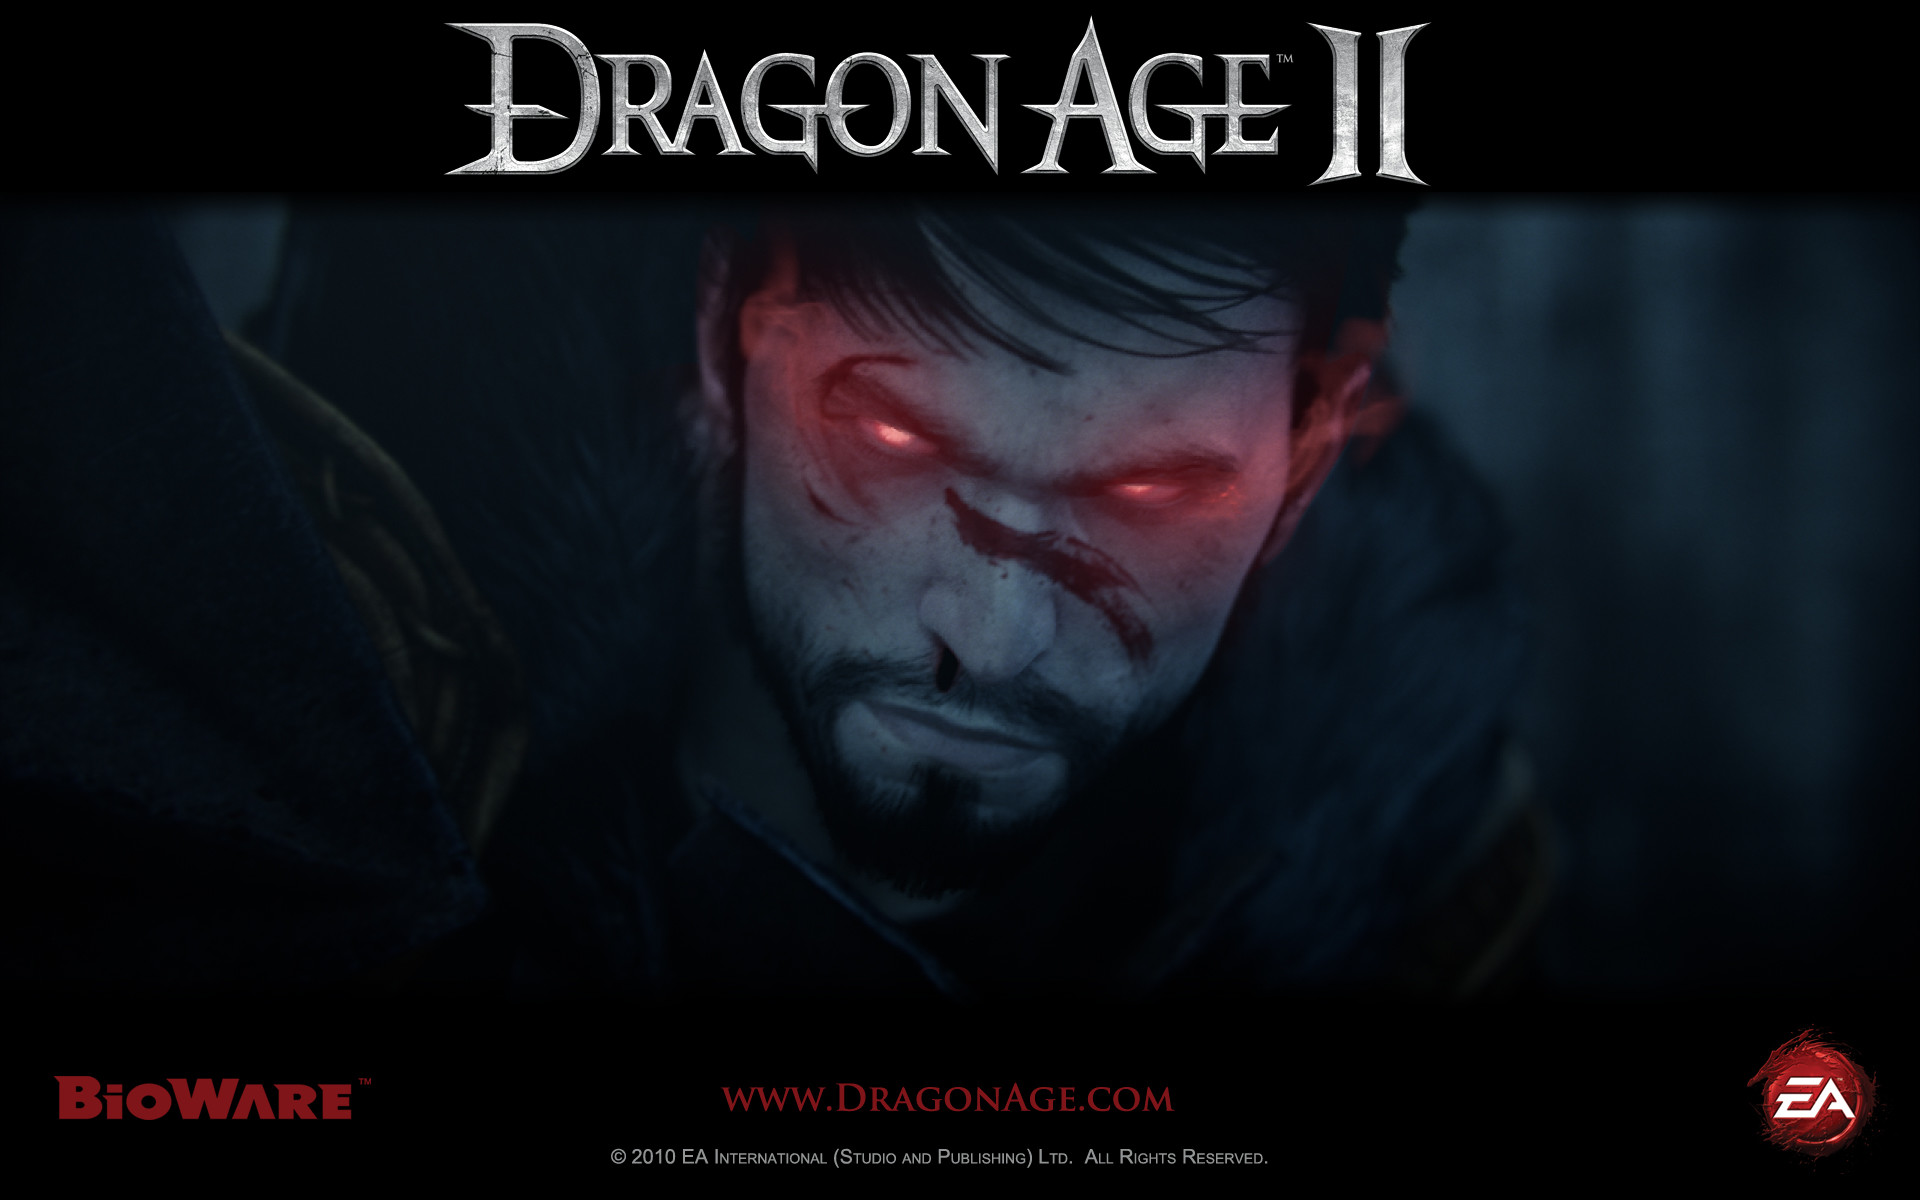 1920x1200 Download (). Dragon Age 2. Hawke. Download (1280x1024) Download  (1600x1200)